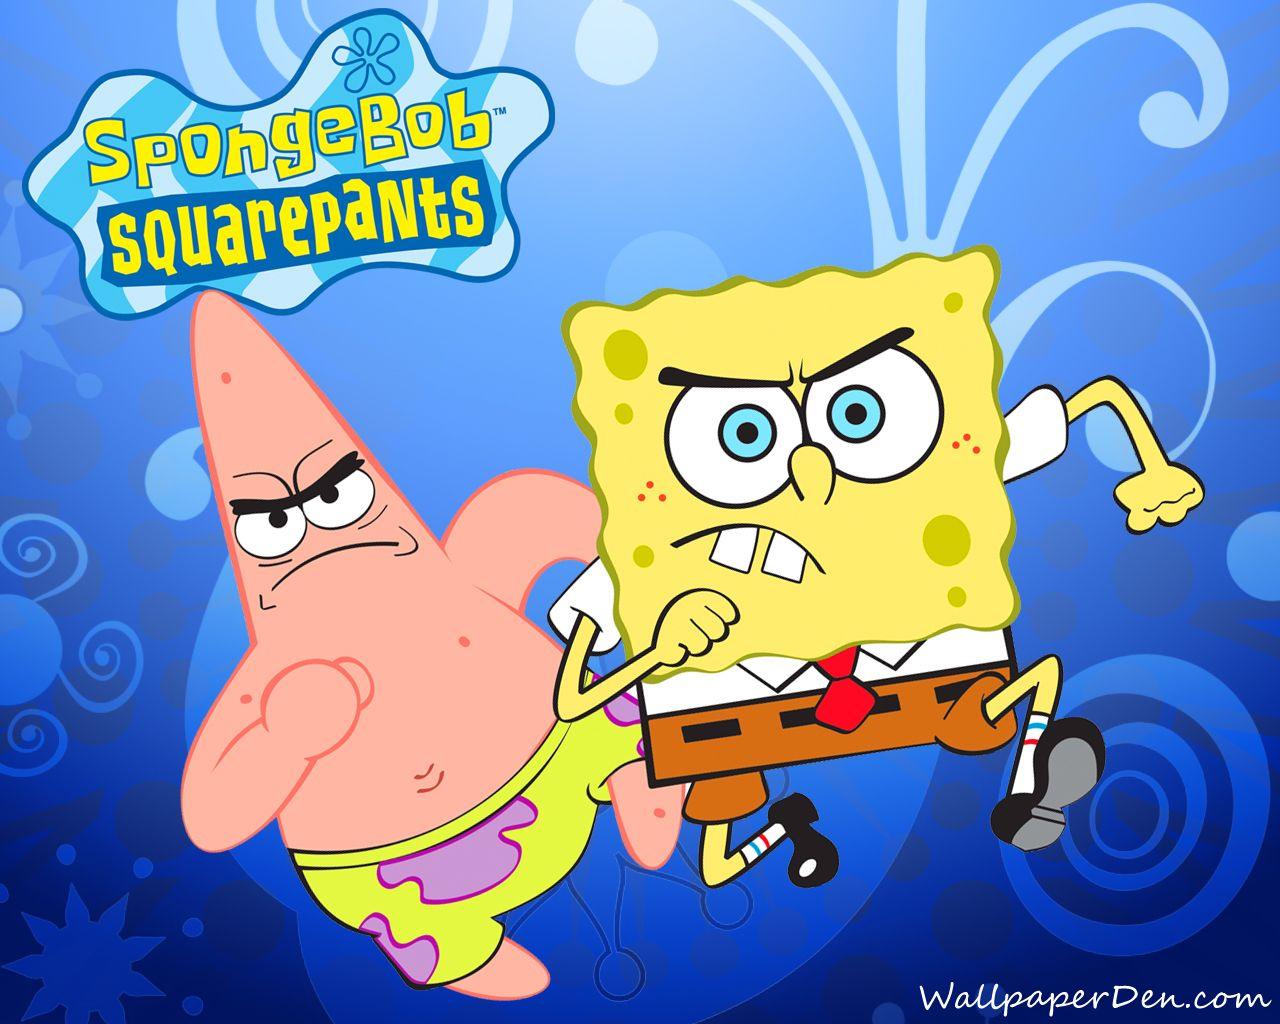 12 best spongebob images on Pinterest  Spongebob squarepants